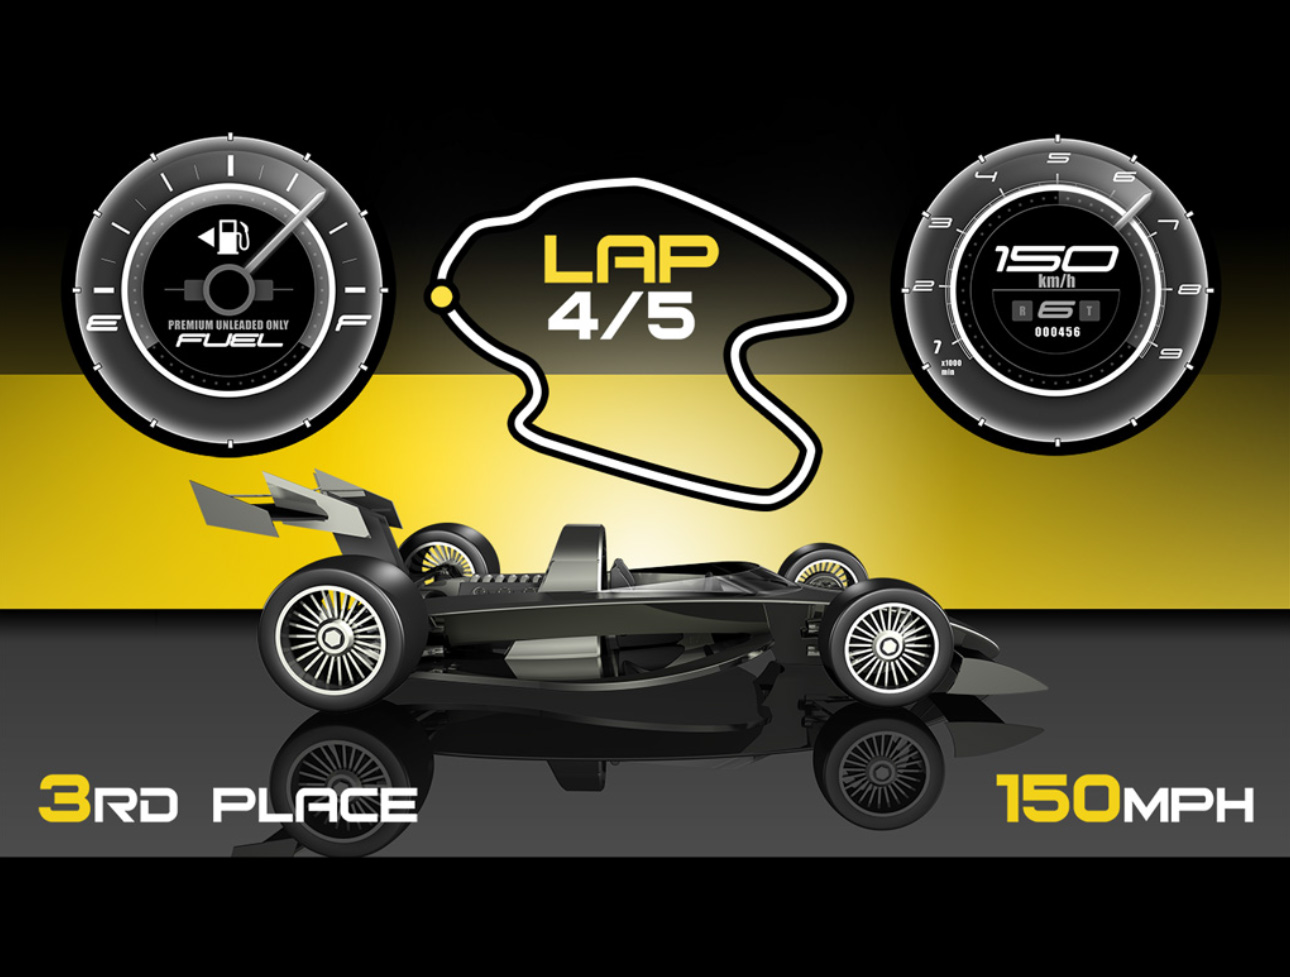 Simple car racing game UI